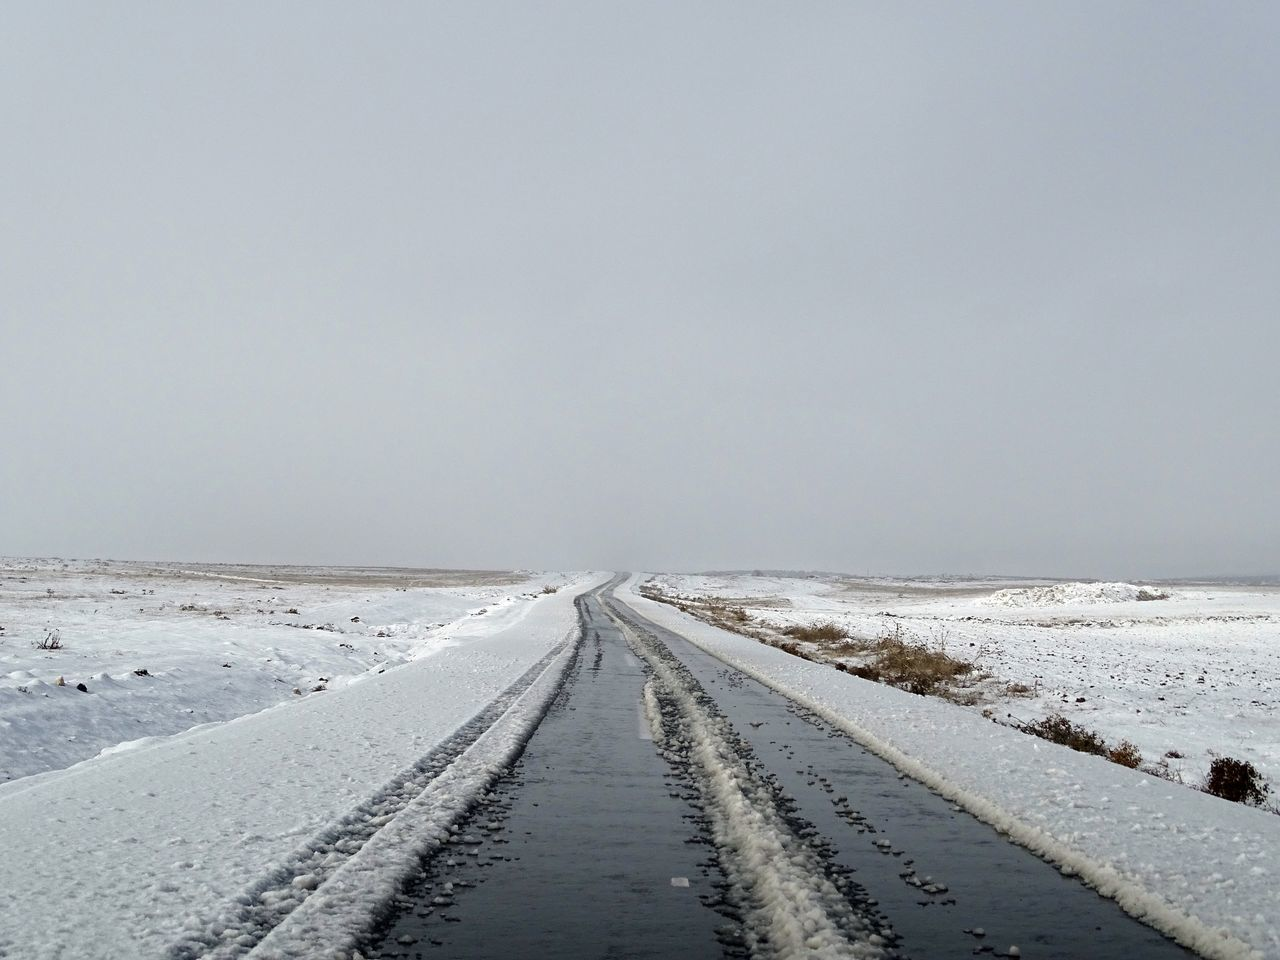 Winter And Ride Day Cold Temperature Weather Road The Way Forward Winter Snow Outdoors Tranquil Scene Nature Scenics Landscape Tranquility No People Beauty In Nature Transportation Sky Clear Sky